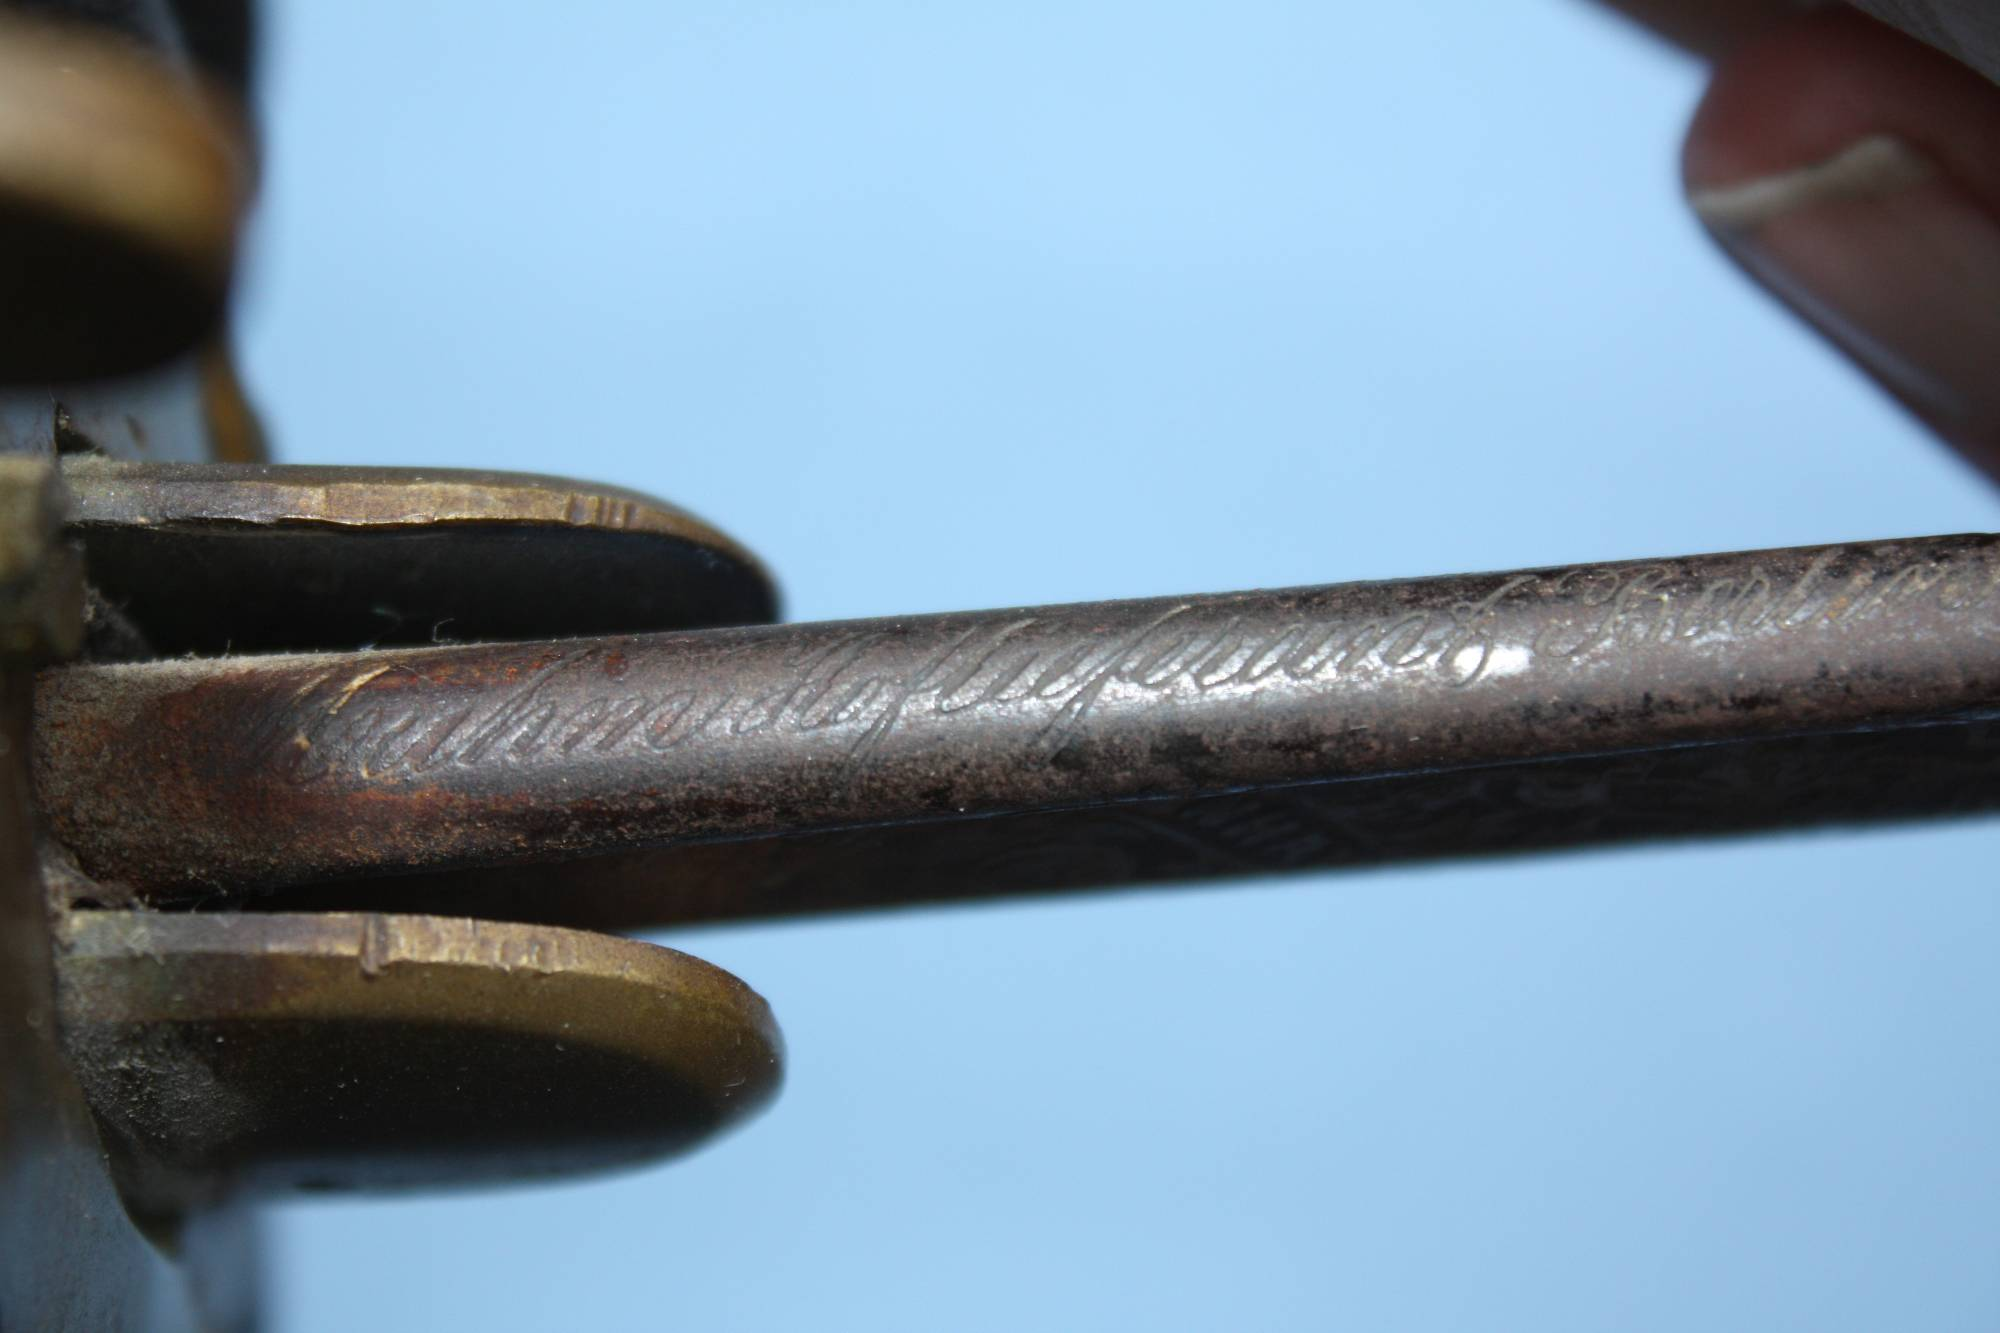 Antique 1850 Preussen Sabre Ferdindand Muhm Berlin, engraved maker's mark, Hoflieferant Ferdinand Muhm Berlin, steel blade with etched marking